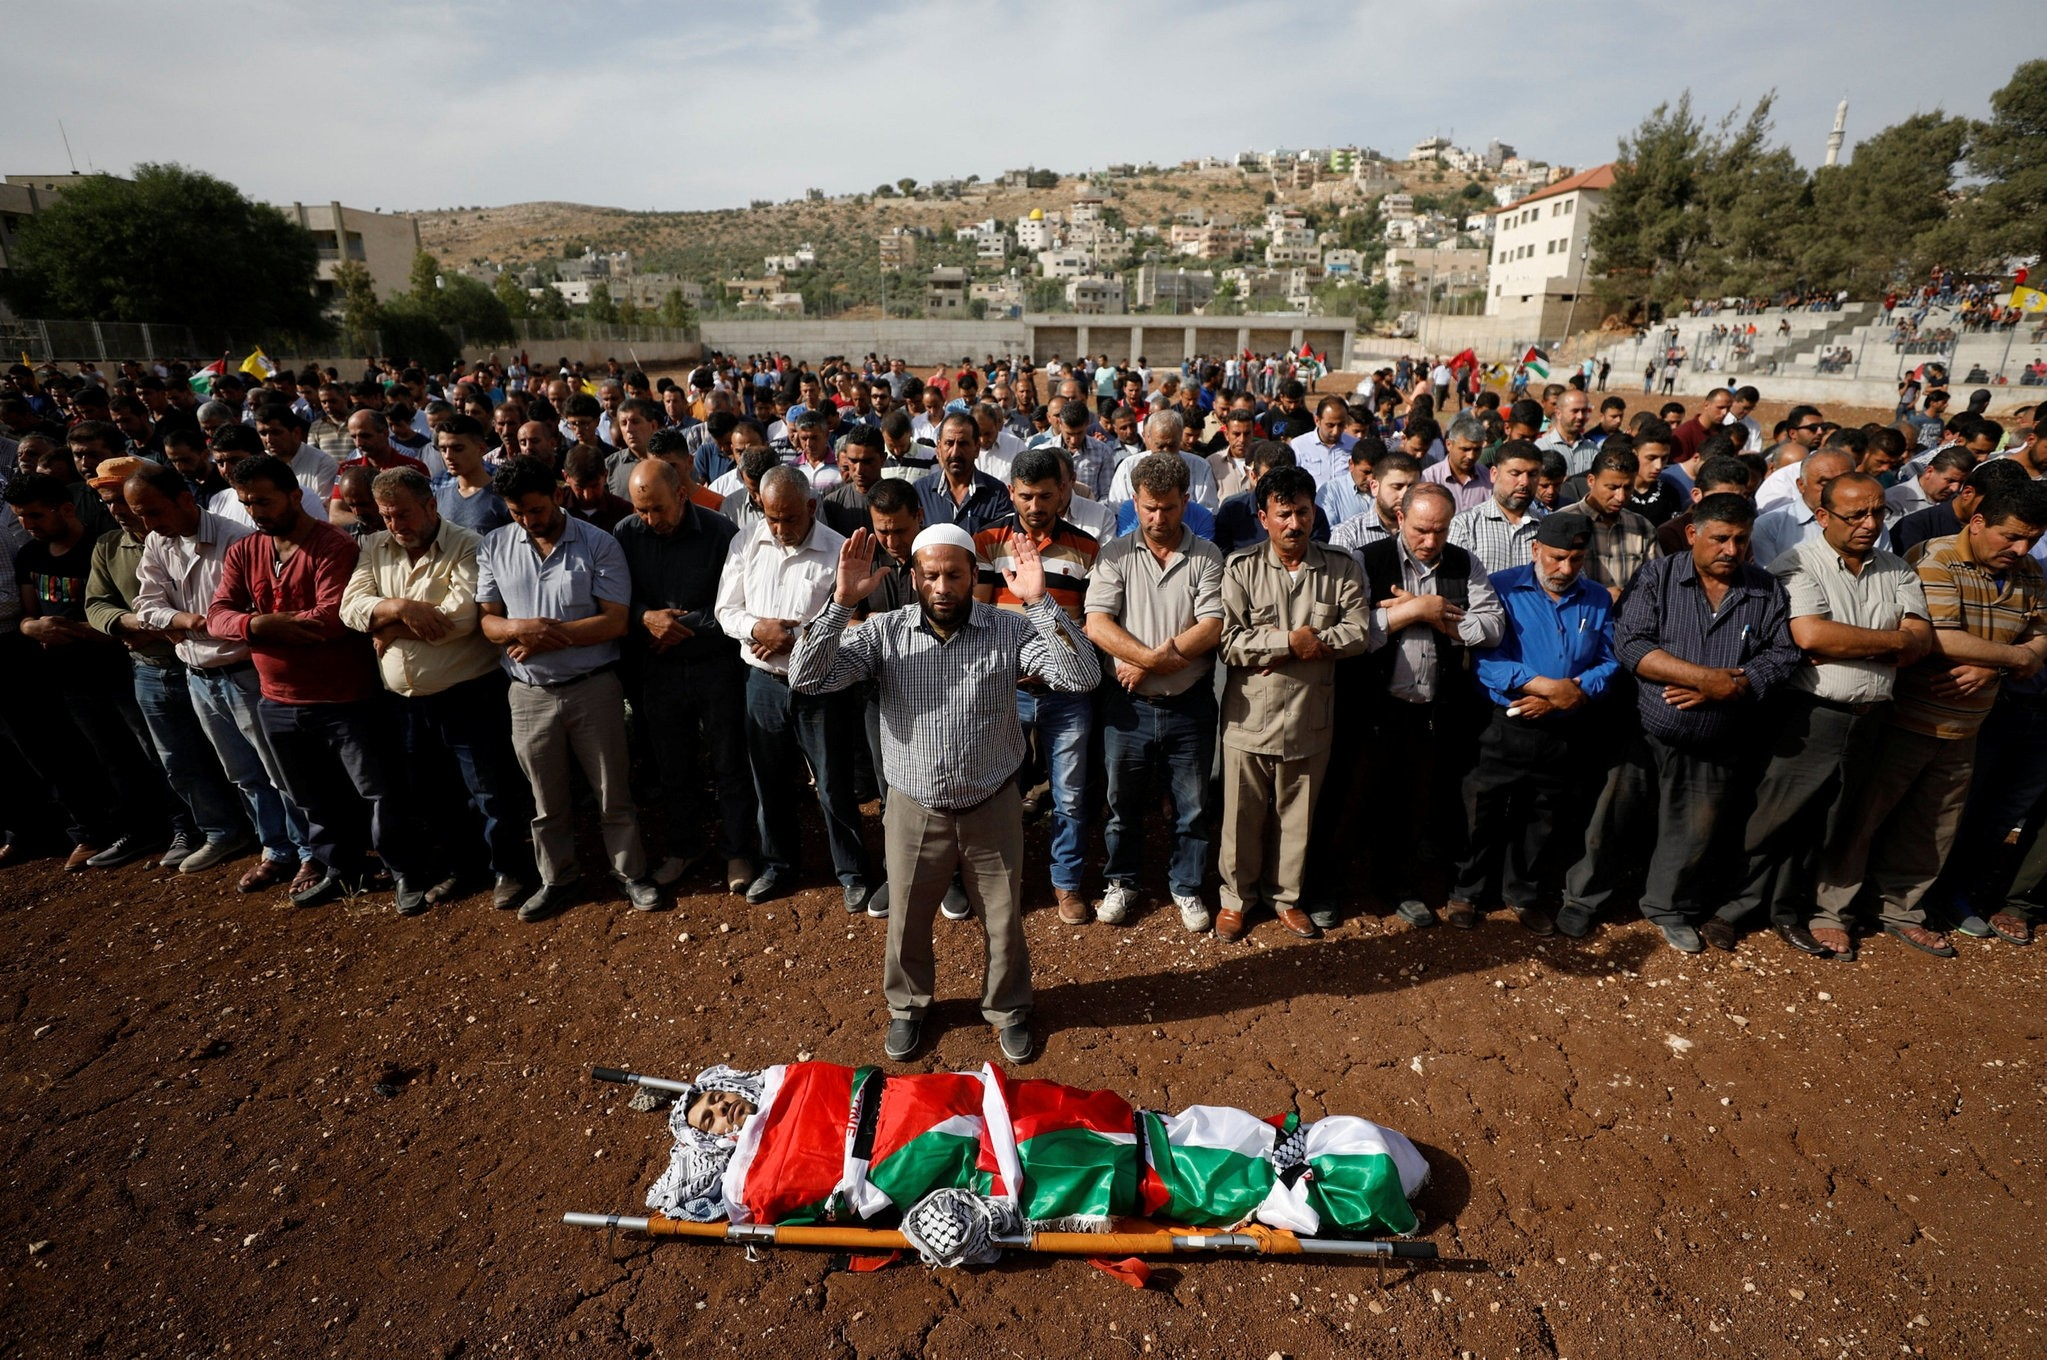 Mourners pray next to the body of Palestinian Motaz Bani Shamsa during his funeral in the West Bank village of Beita, near Nablus May 18, 2017. (REUTERS Photo)